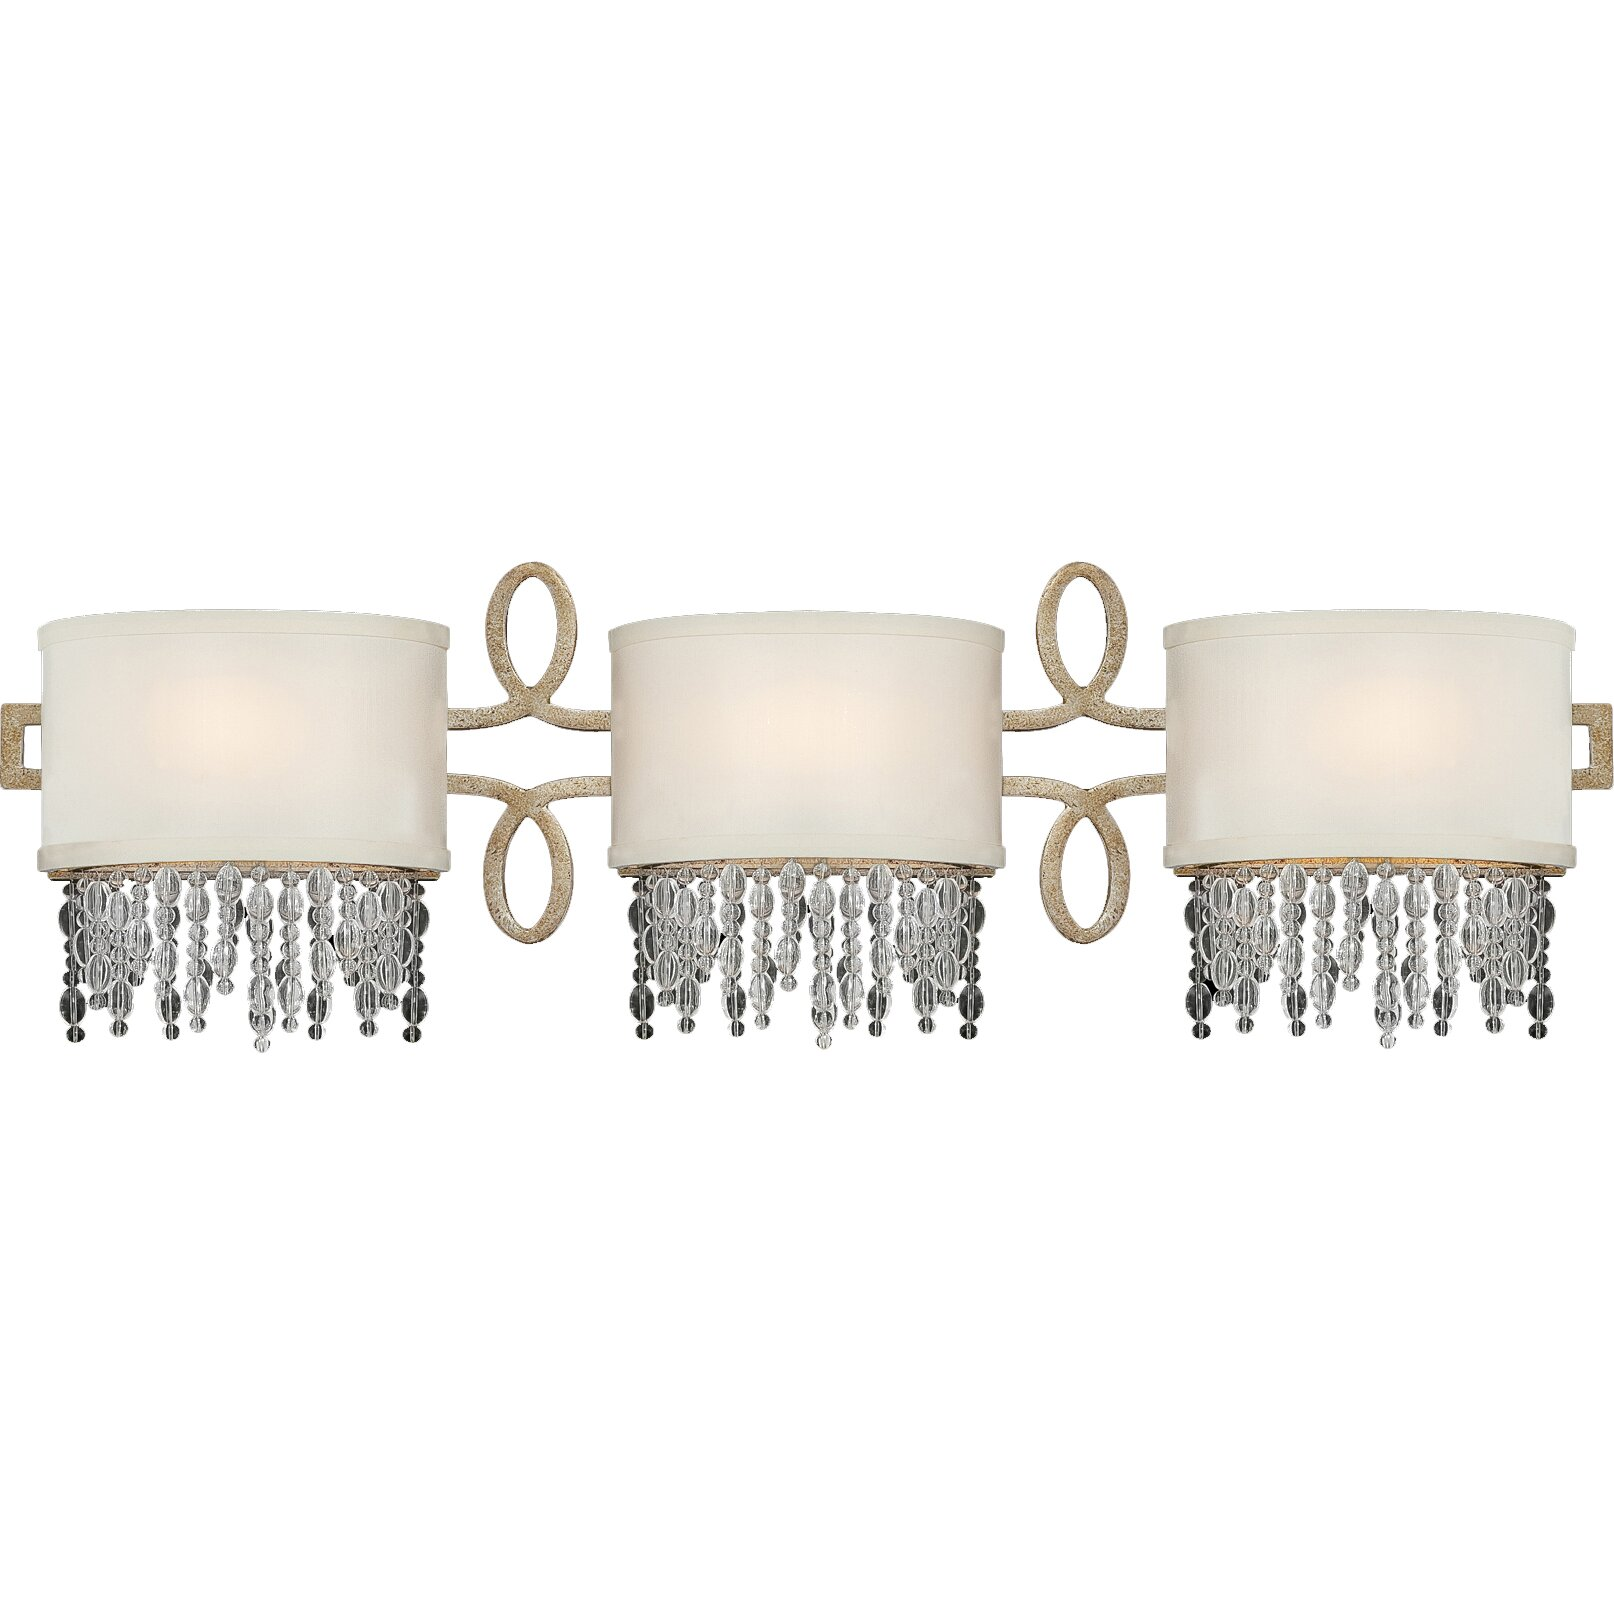 Savoy House Palais 3 Light Bath Bar Reviews Wayfair